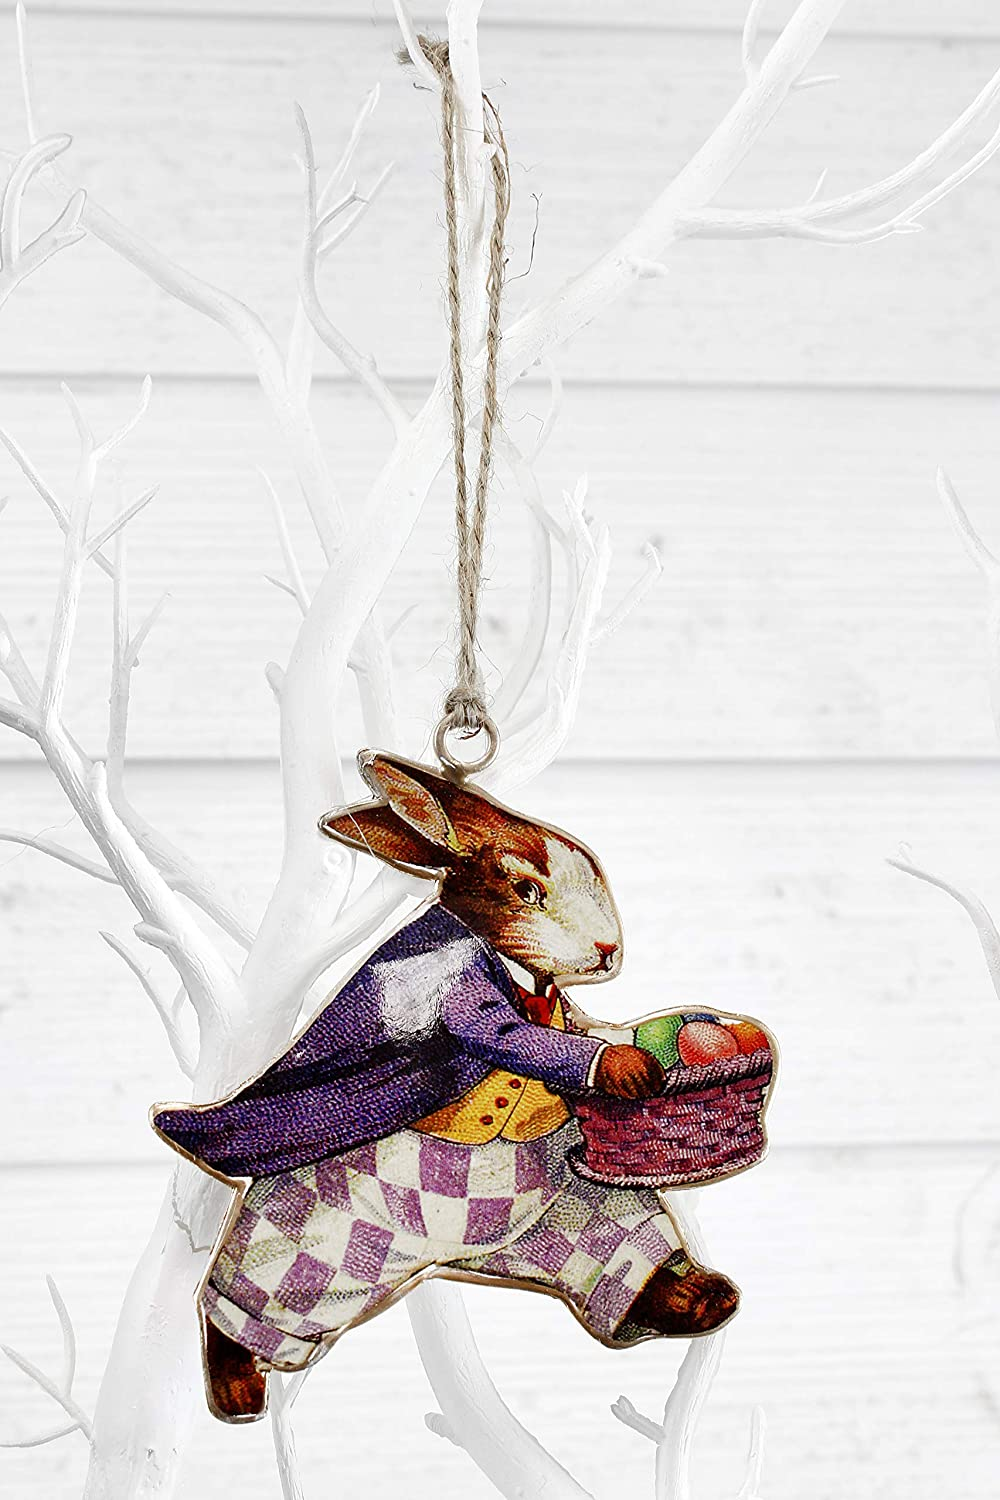 AuldHome Vintage Easter Bunny Decorations Set of 6 ; Classic Rabbit and Egg Themed Retro Easter Ornaments